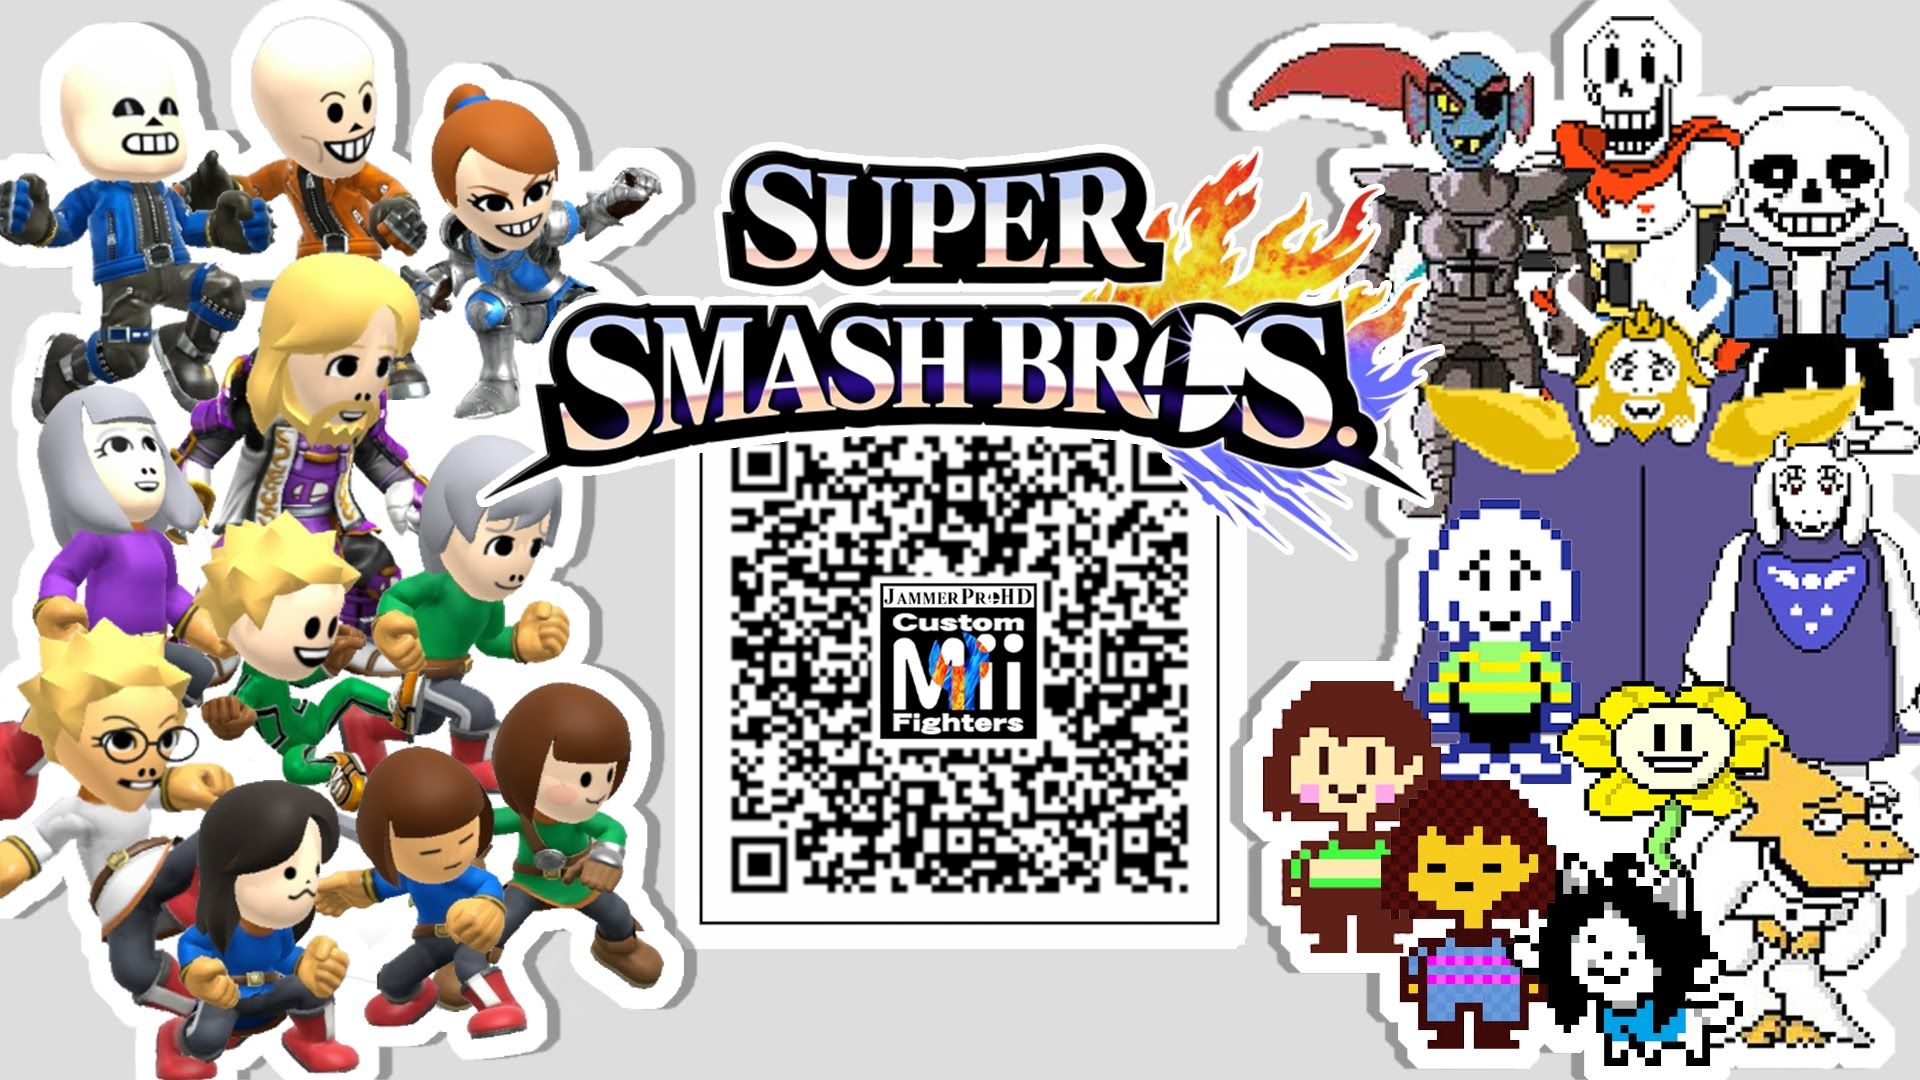 Sans, Papyrus, Frisk, Flowey, and MORE! - Mii Fighter QR